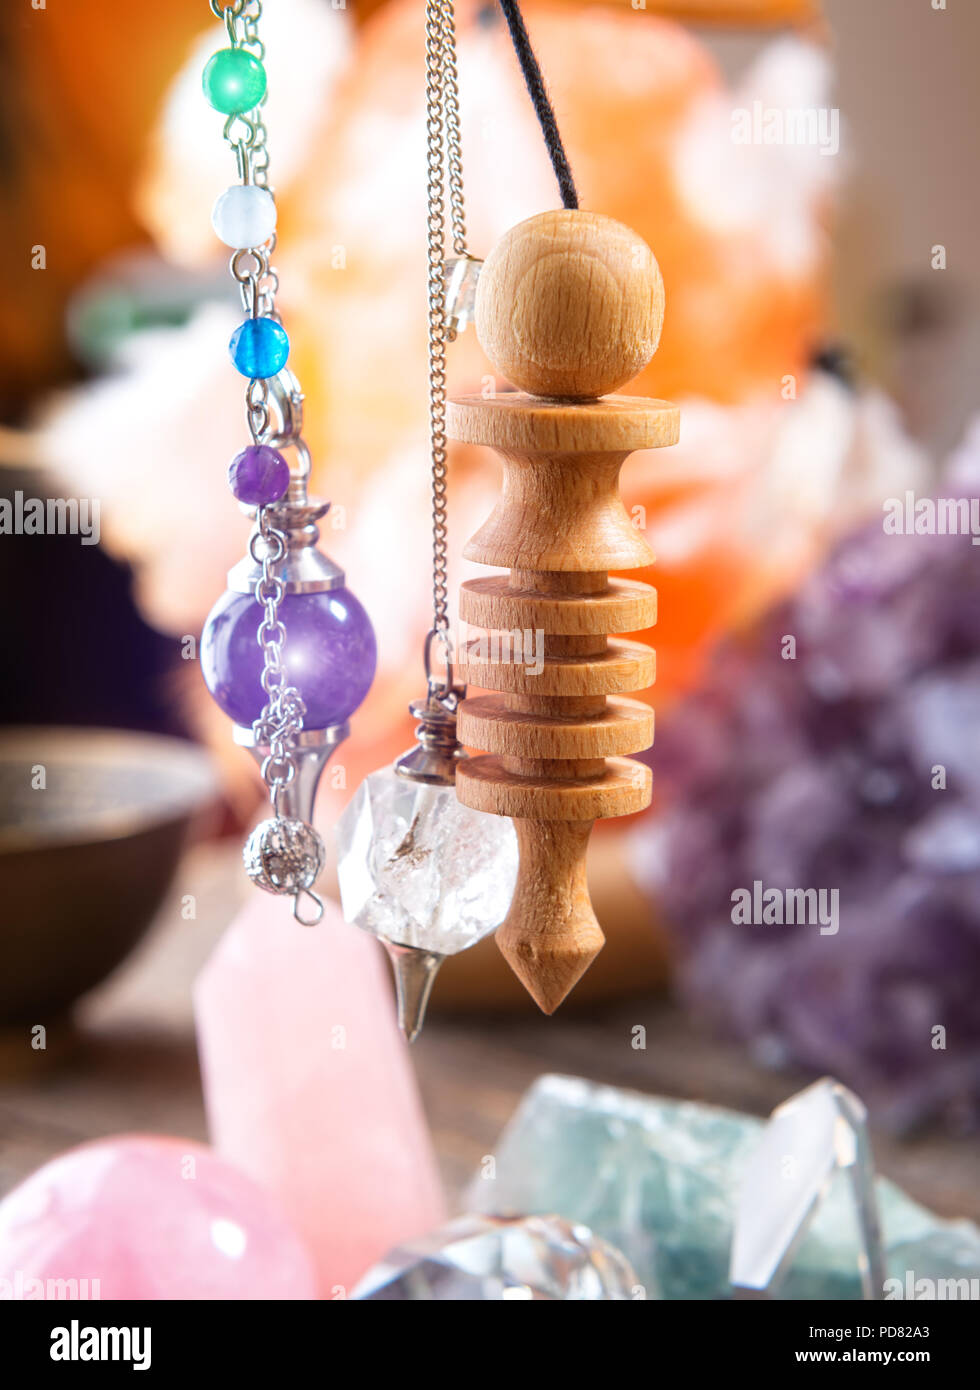 Pendulums crystal pendulum, amethyst, tool for dowsing. Crystals undrneath an in backbround. - Stock Image